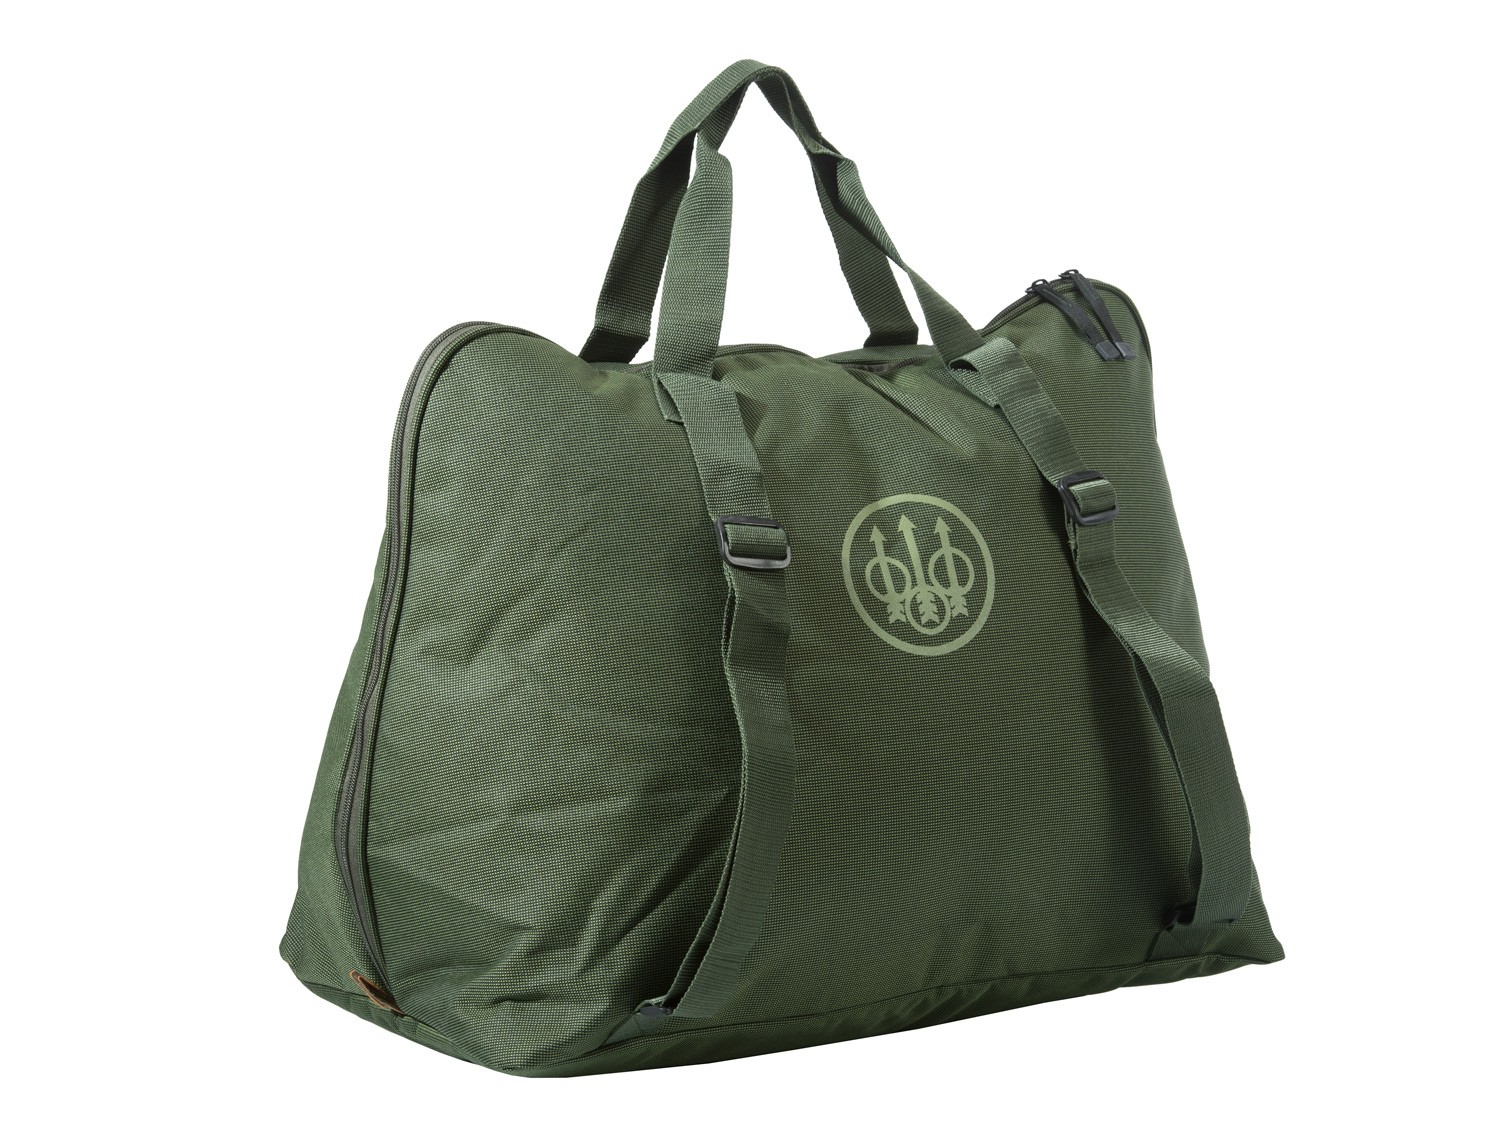 Sac à gibier beretta b-wild, made in chasse - equipements...